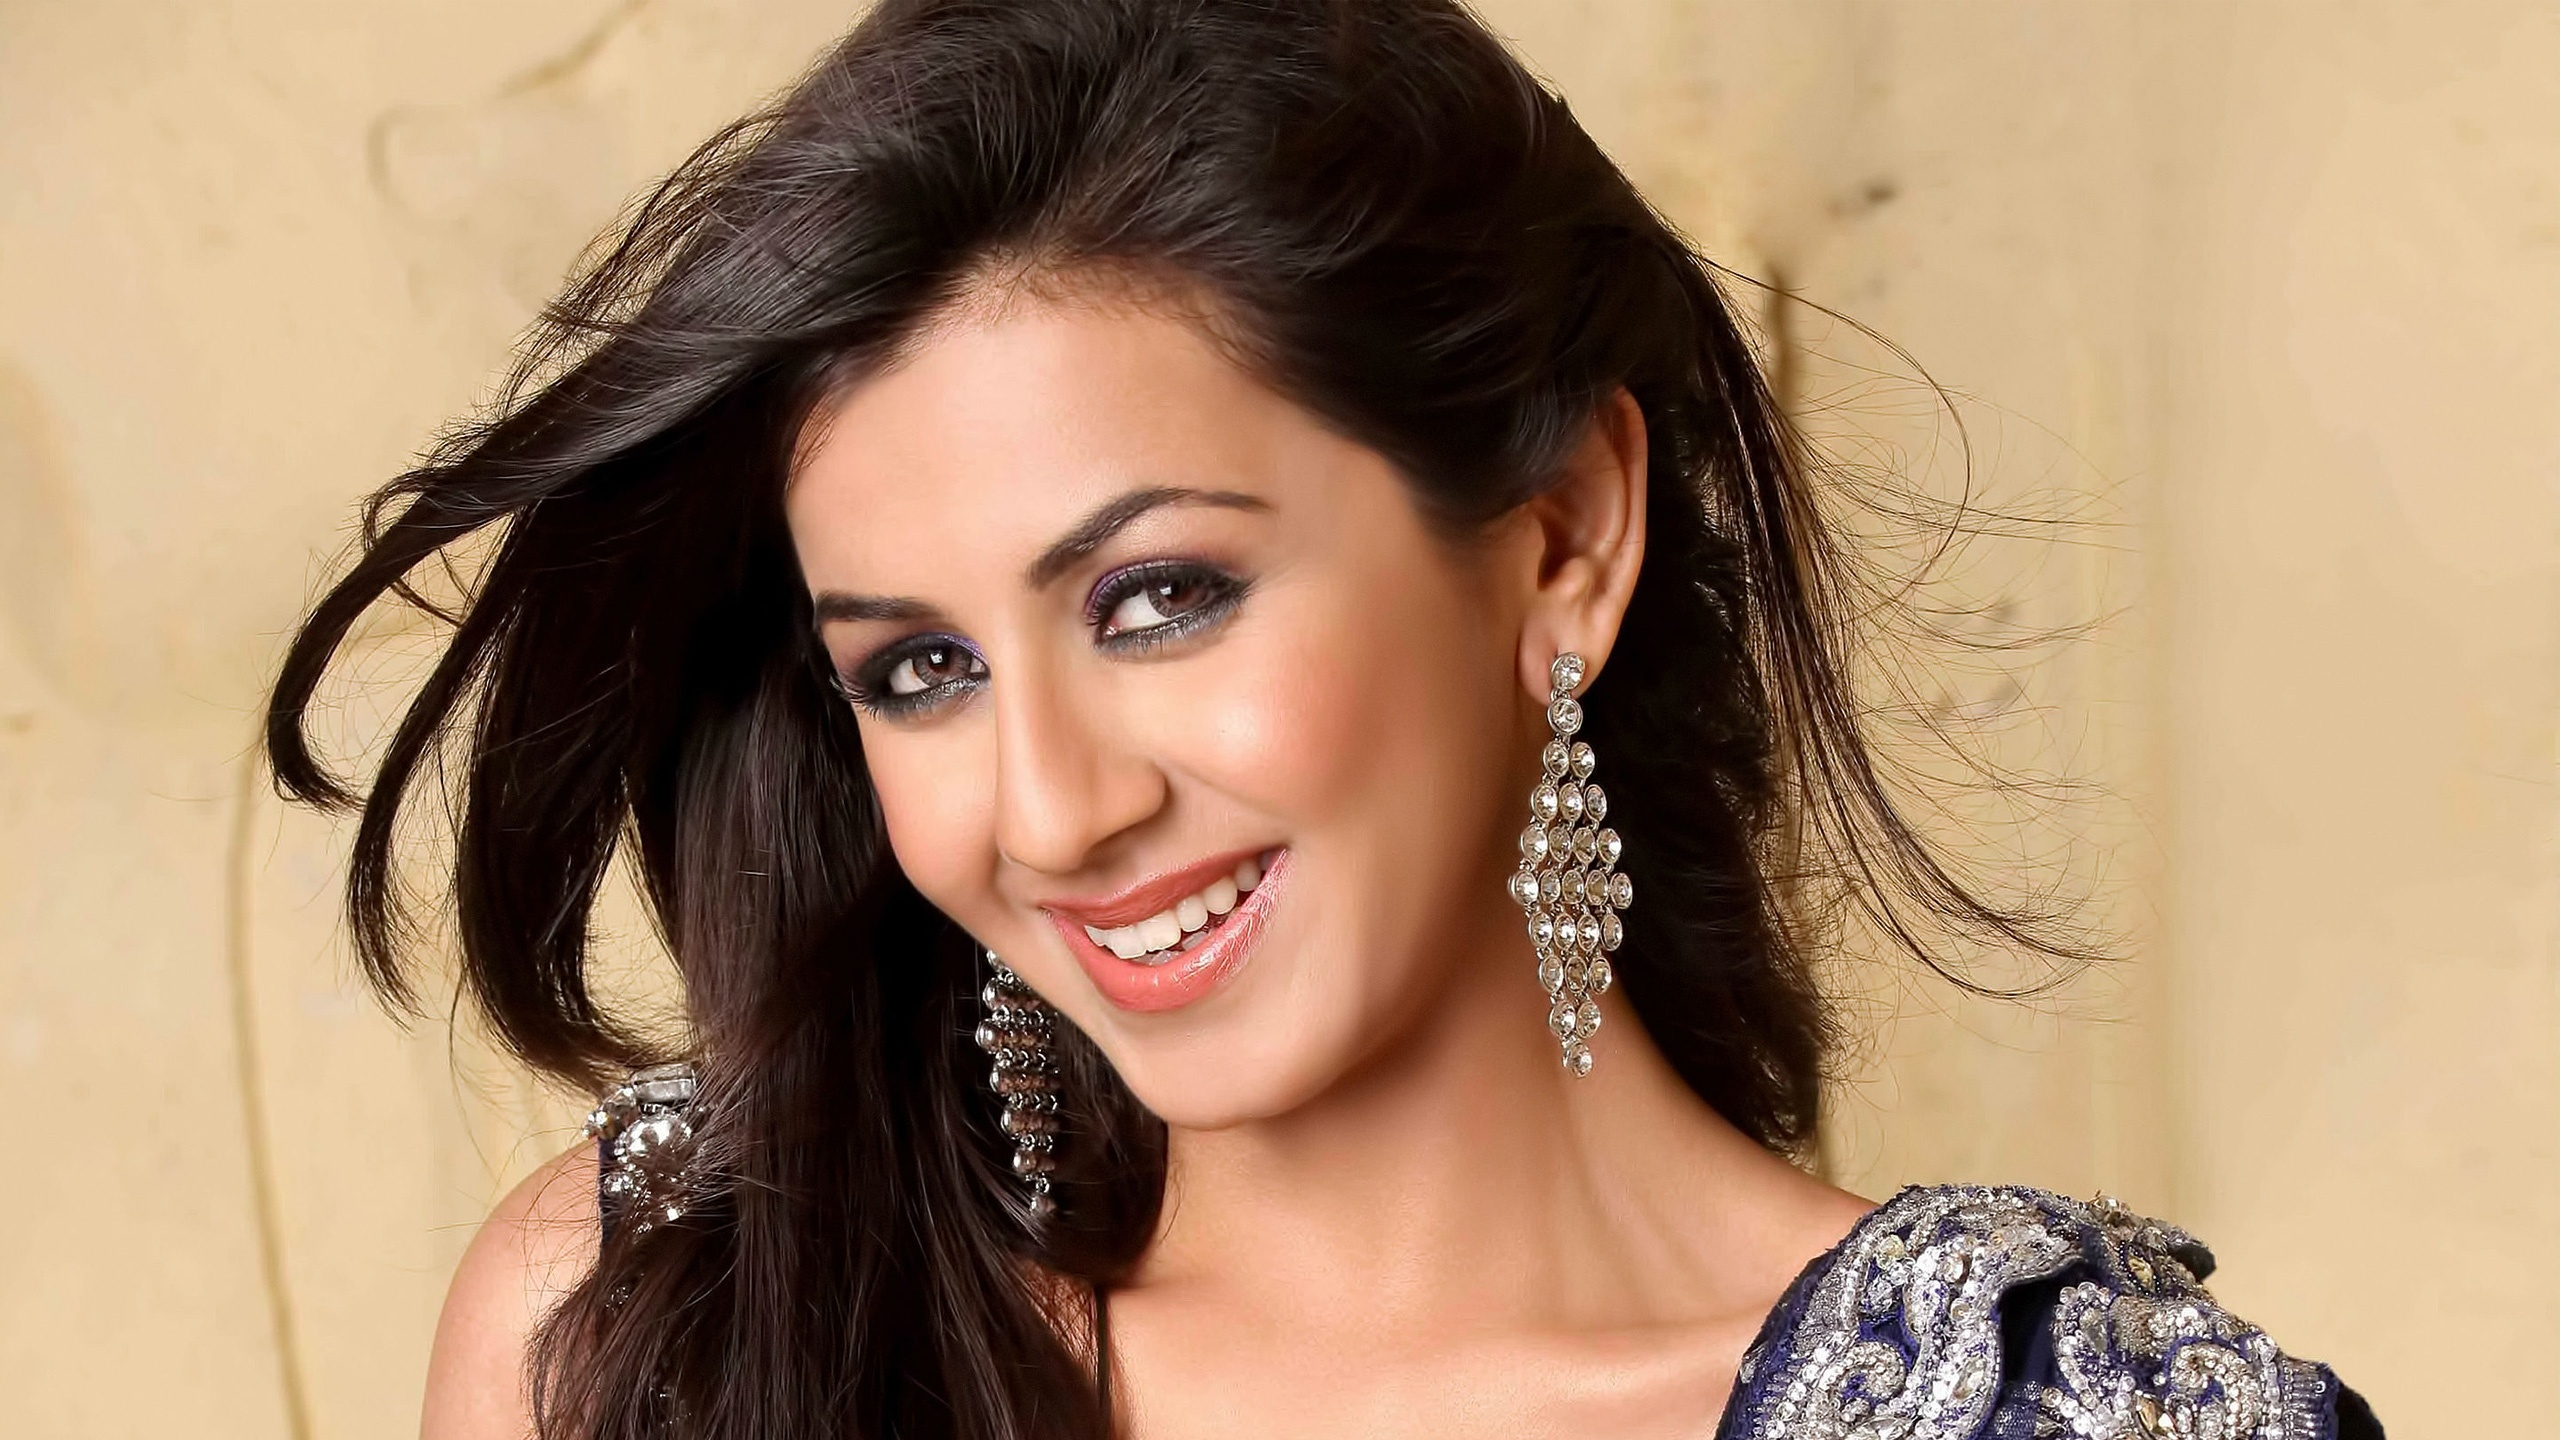 nikki galrani indian actress wallpapers in jpg format for free download